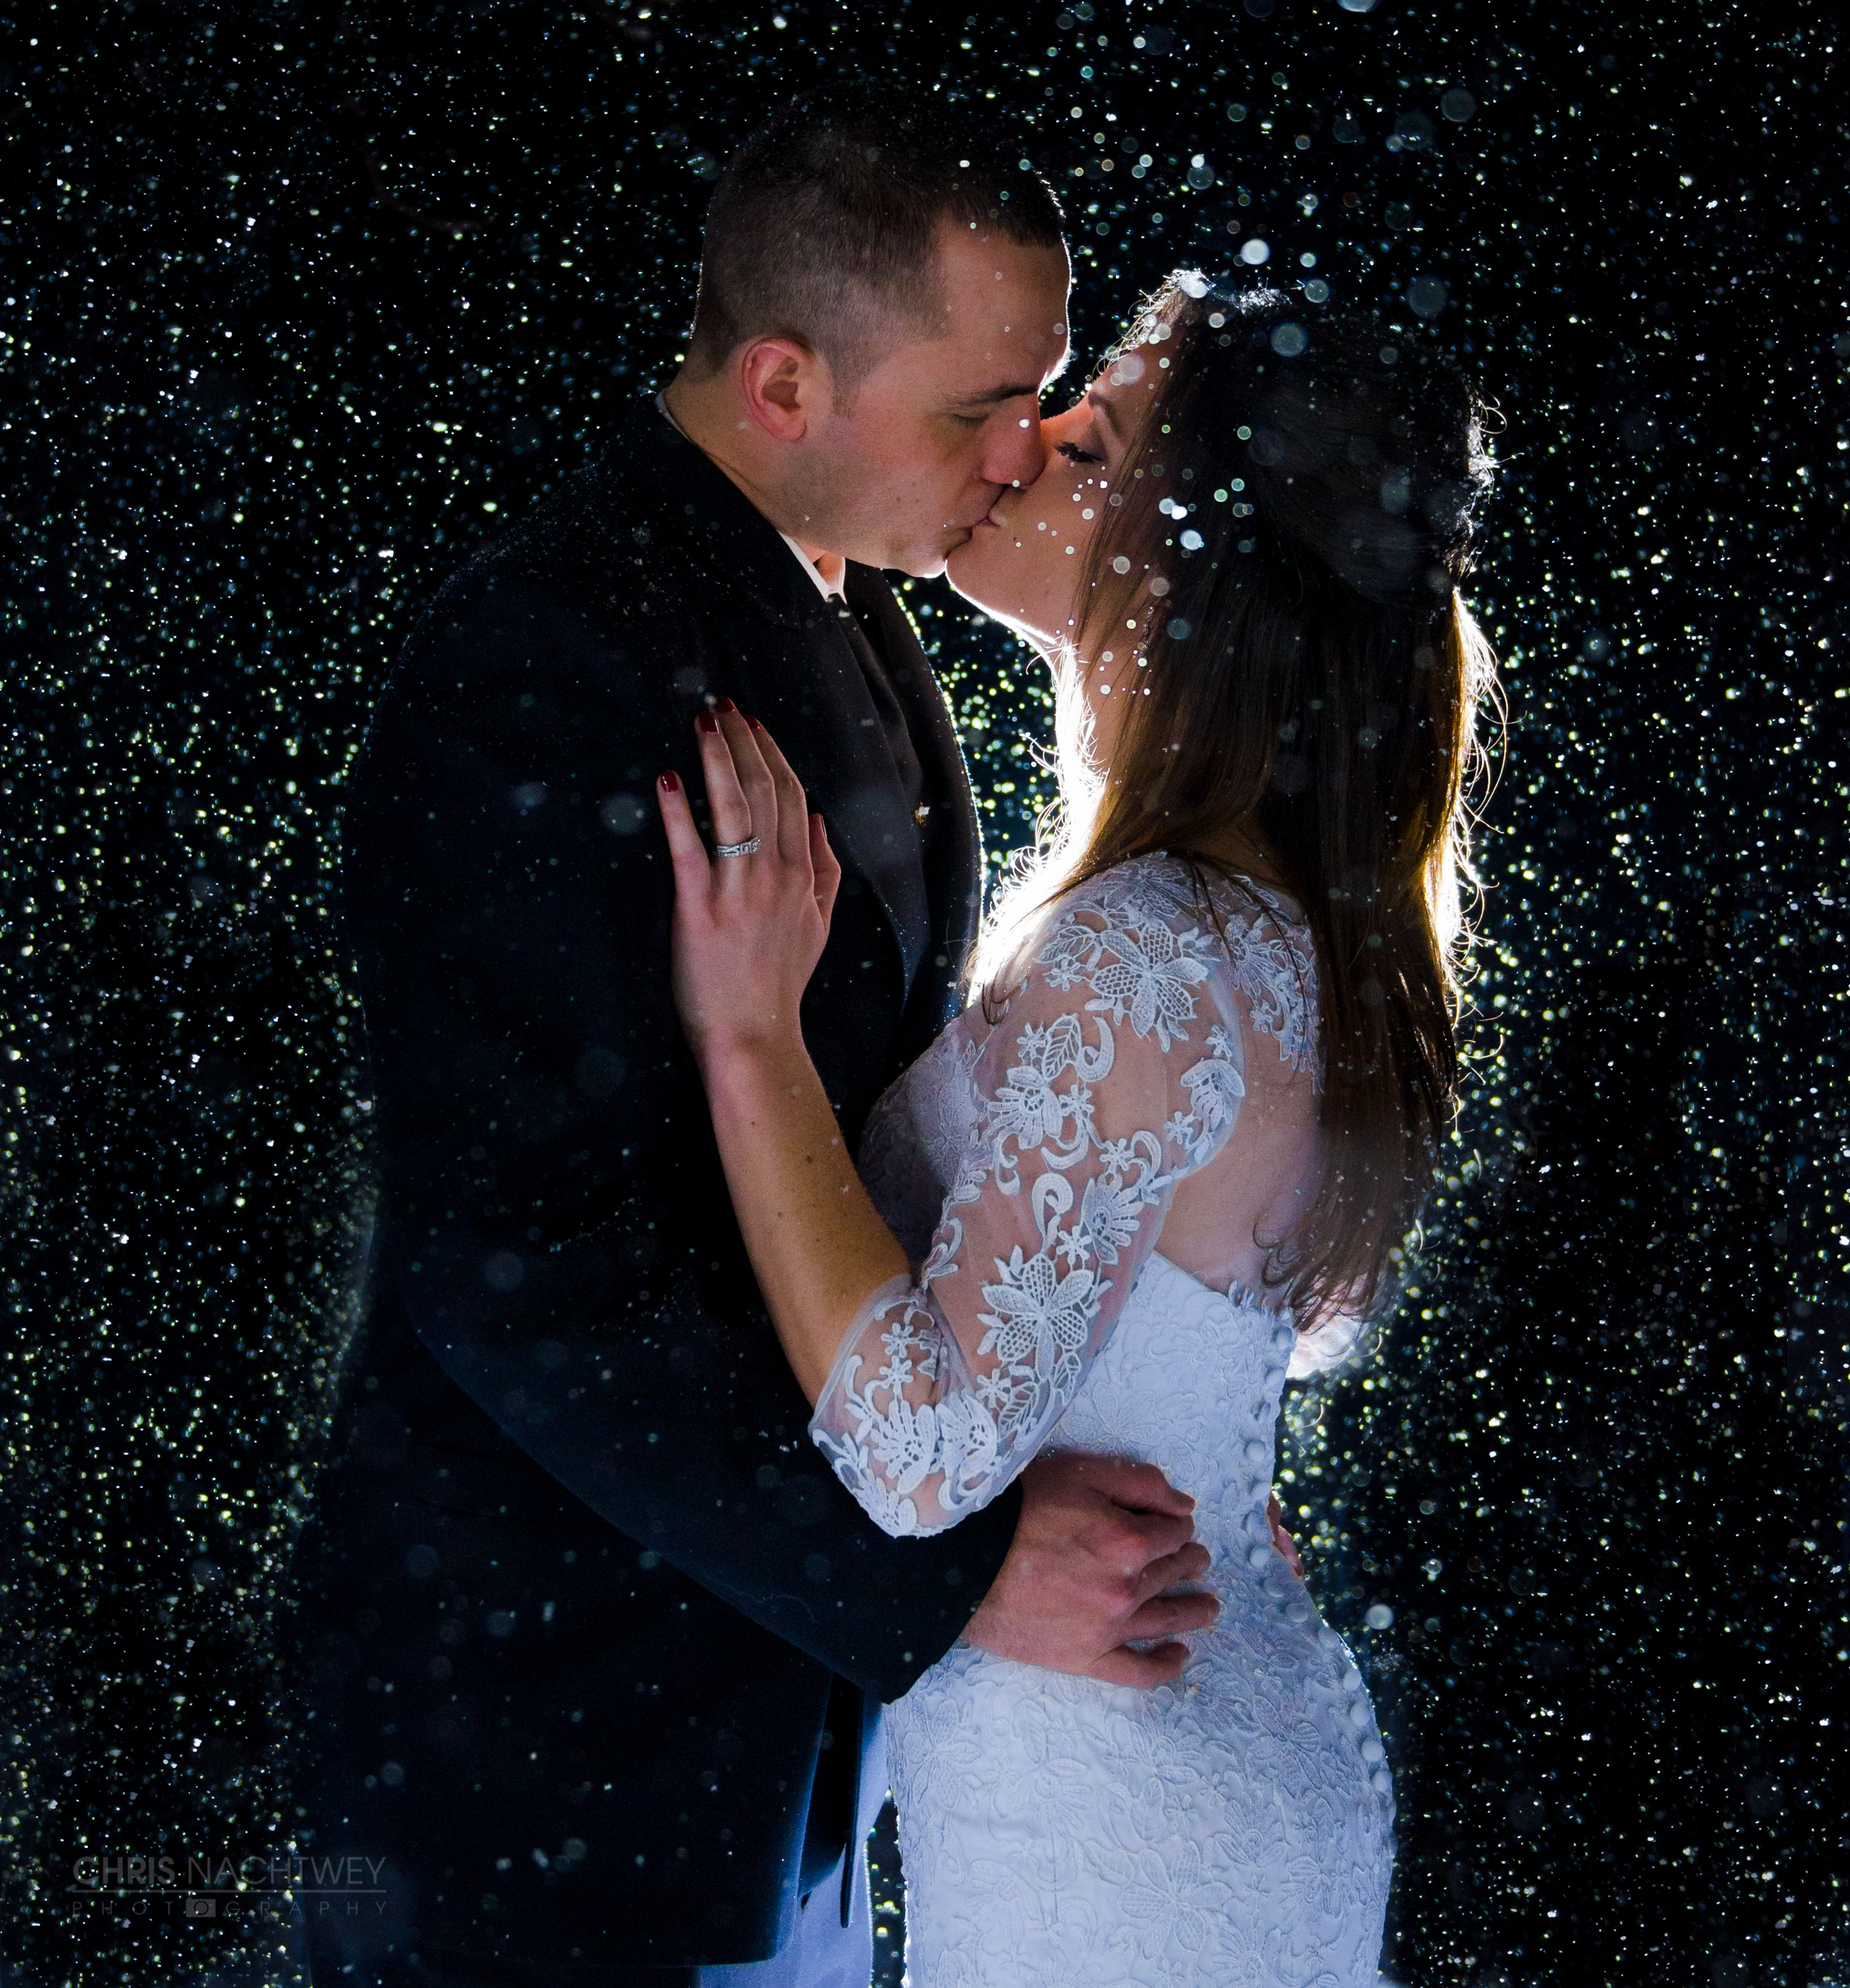 snowstorm-ct-wedding-photos-old-lyme-chris-nachtwey